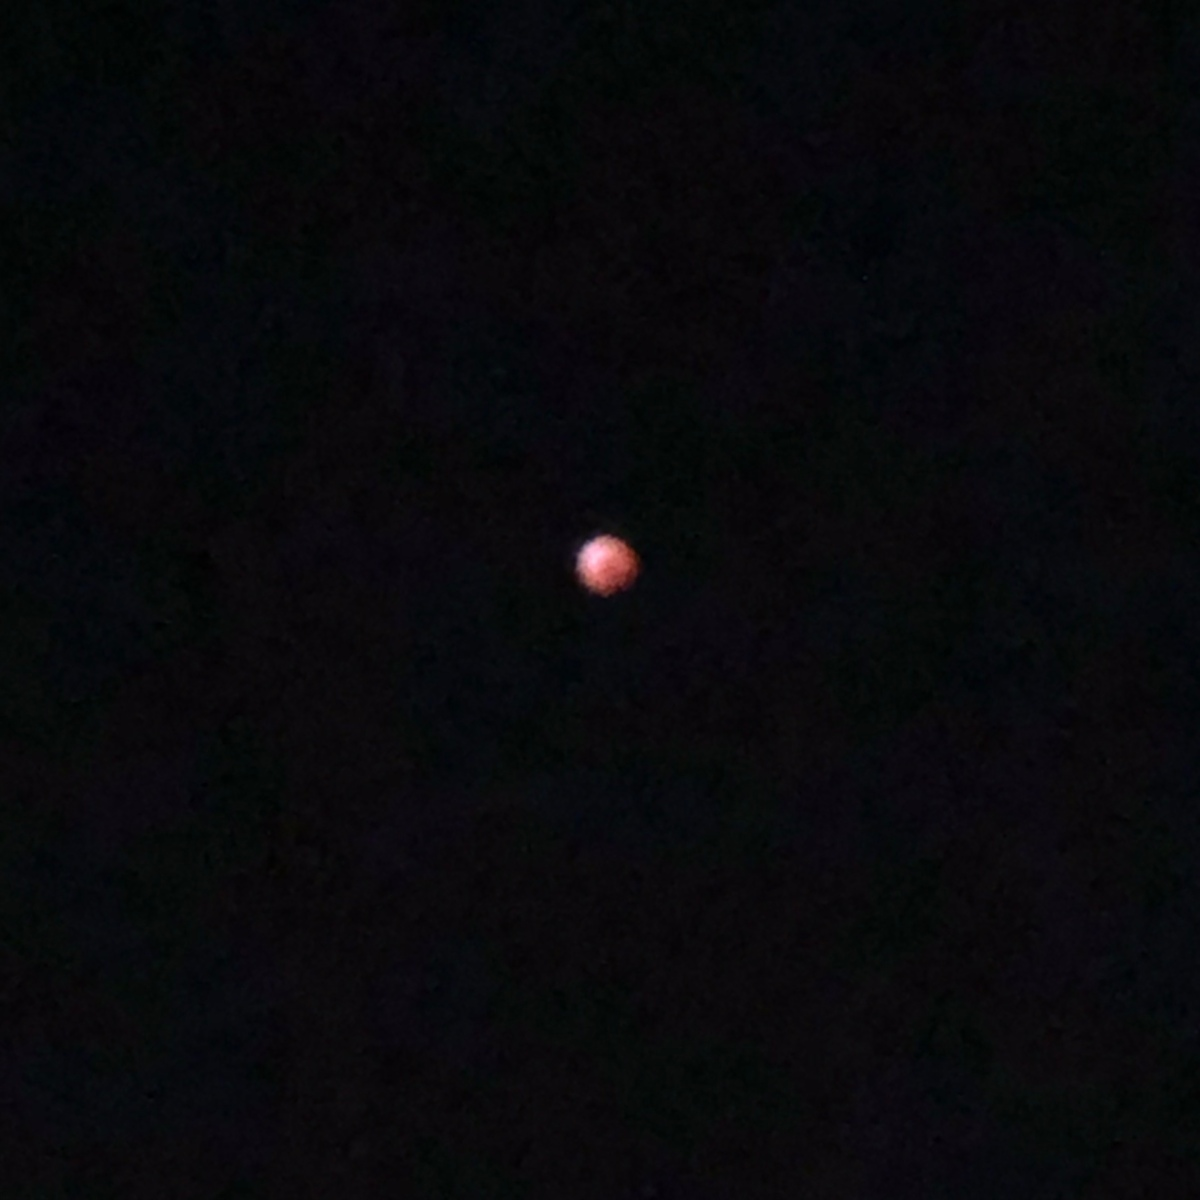 Lunar eclipse!